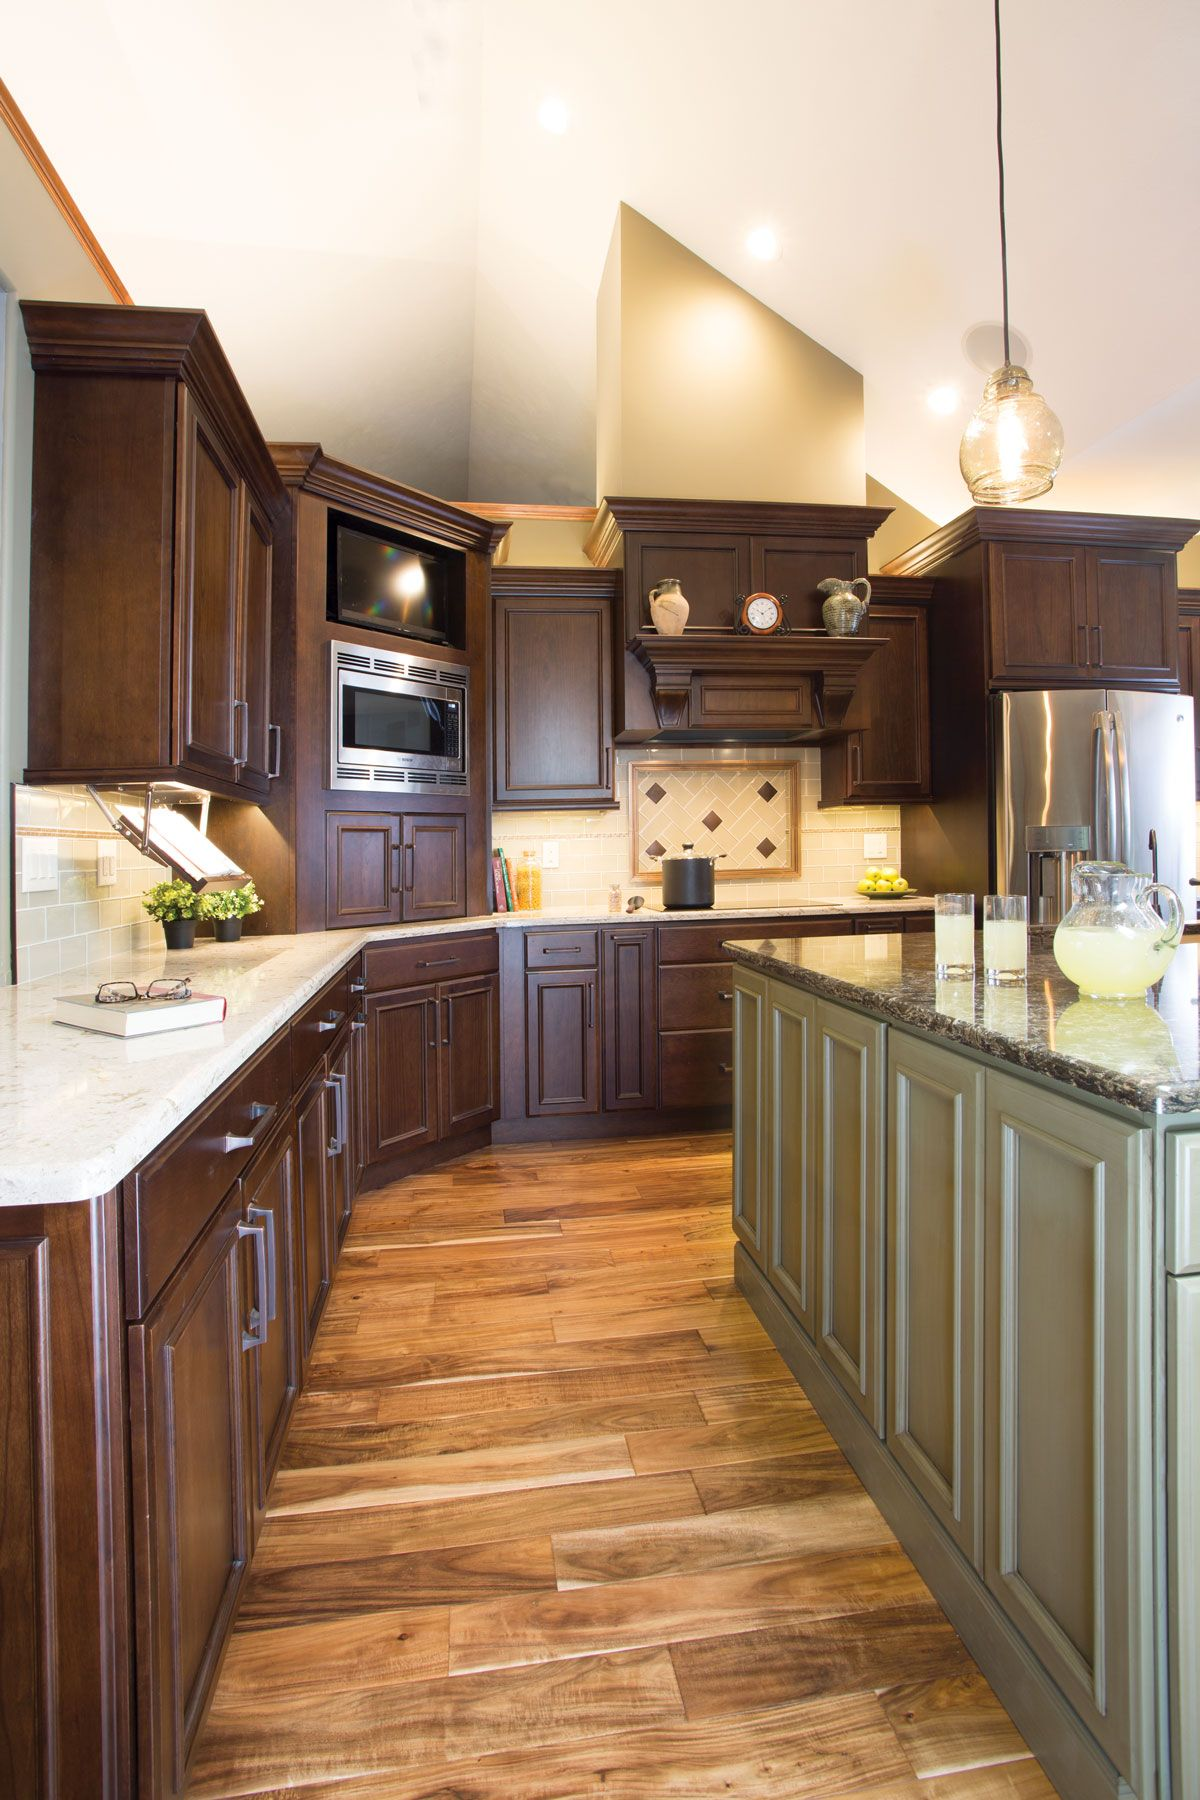 Starmark Cabinetry S Harbor Door Style In Cherry Finished In Hazelnut Was Used For The Peri Cherry Cabinets Kitchen Old Kitchen Cabinets Kitchen Cabinets Decor